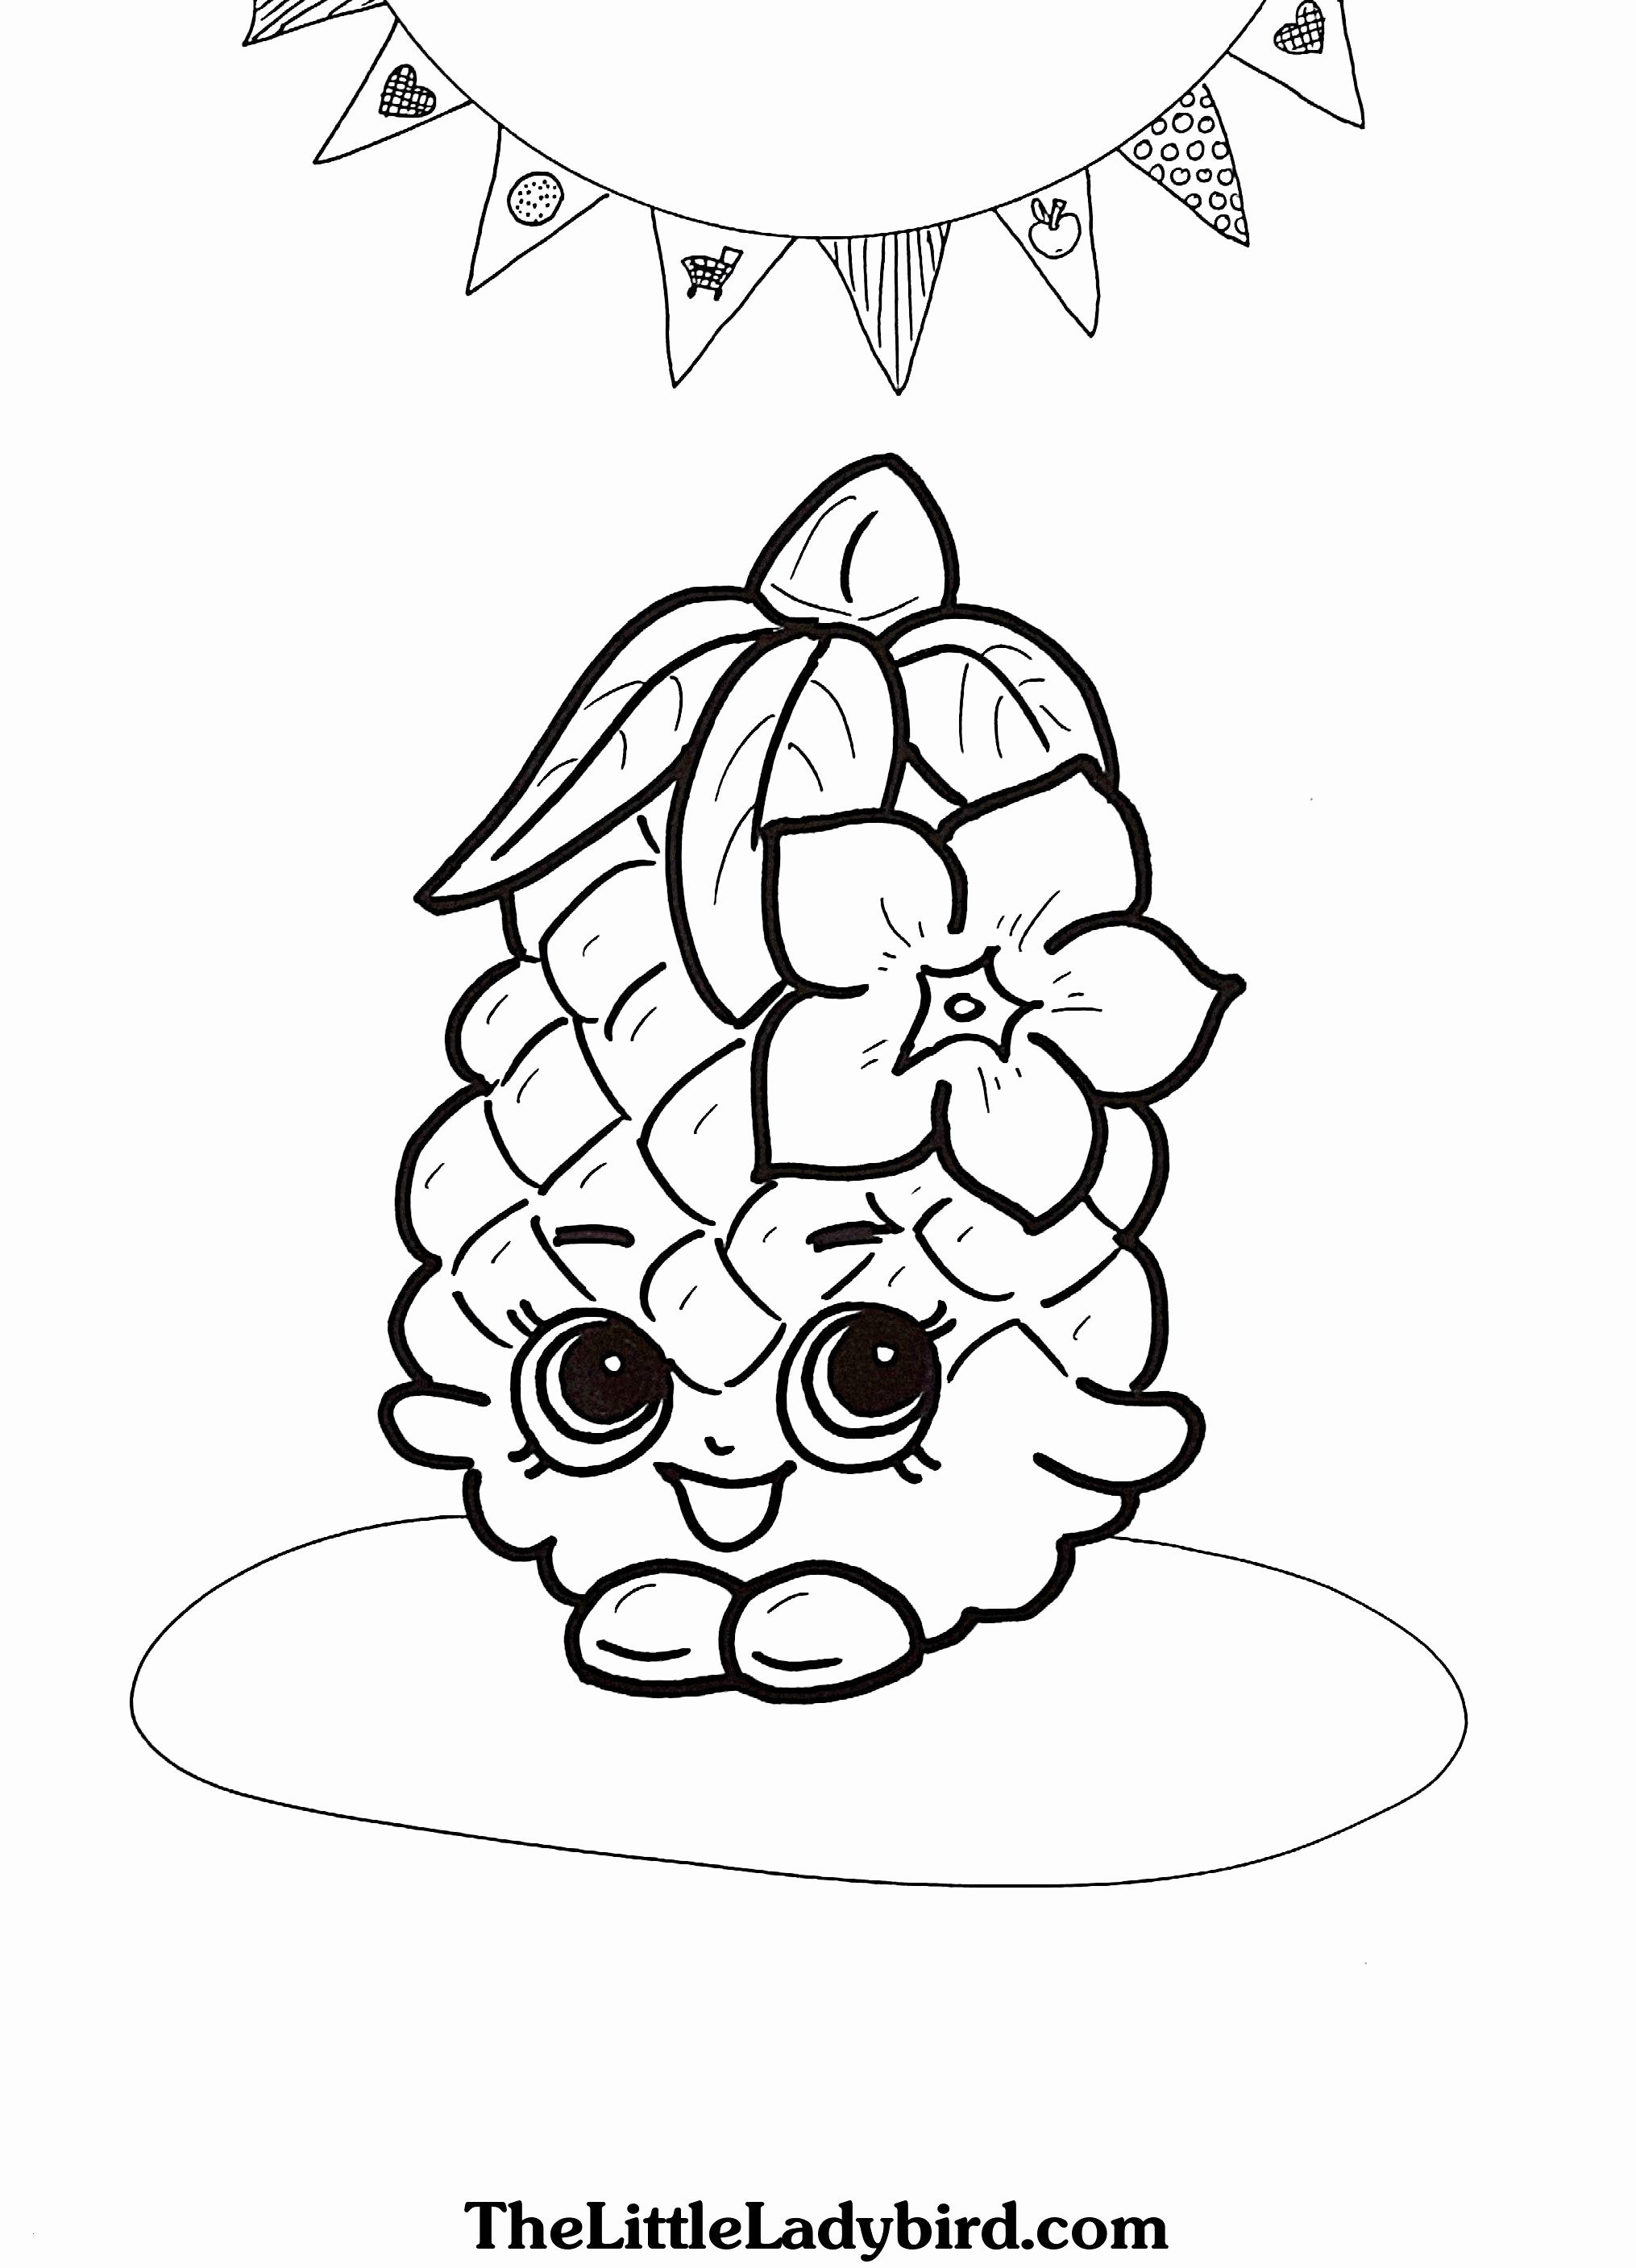 noah's ark coloring pages printable Collection-Children s Church Coloring Pages Inspirational Inspirational Black and White Coloring Pages 1-s